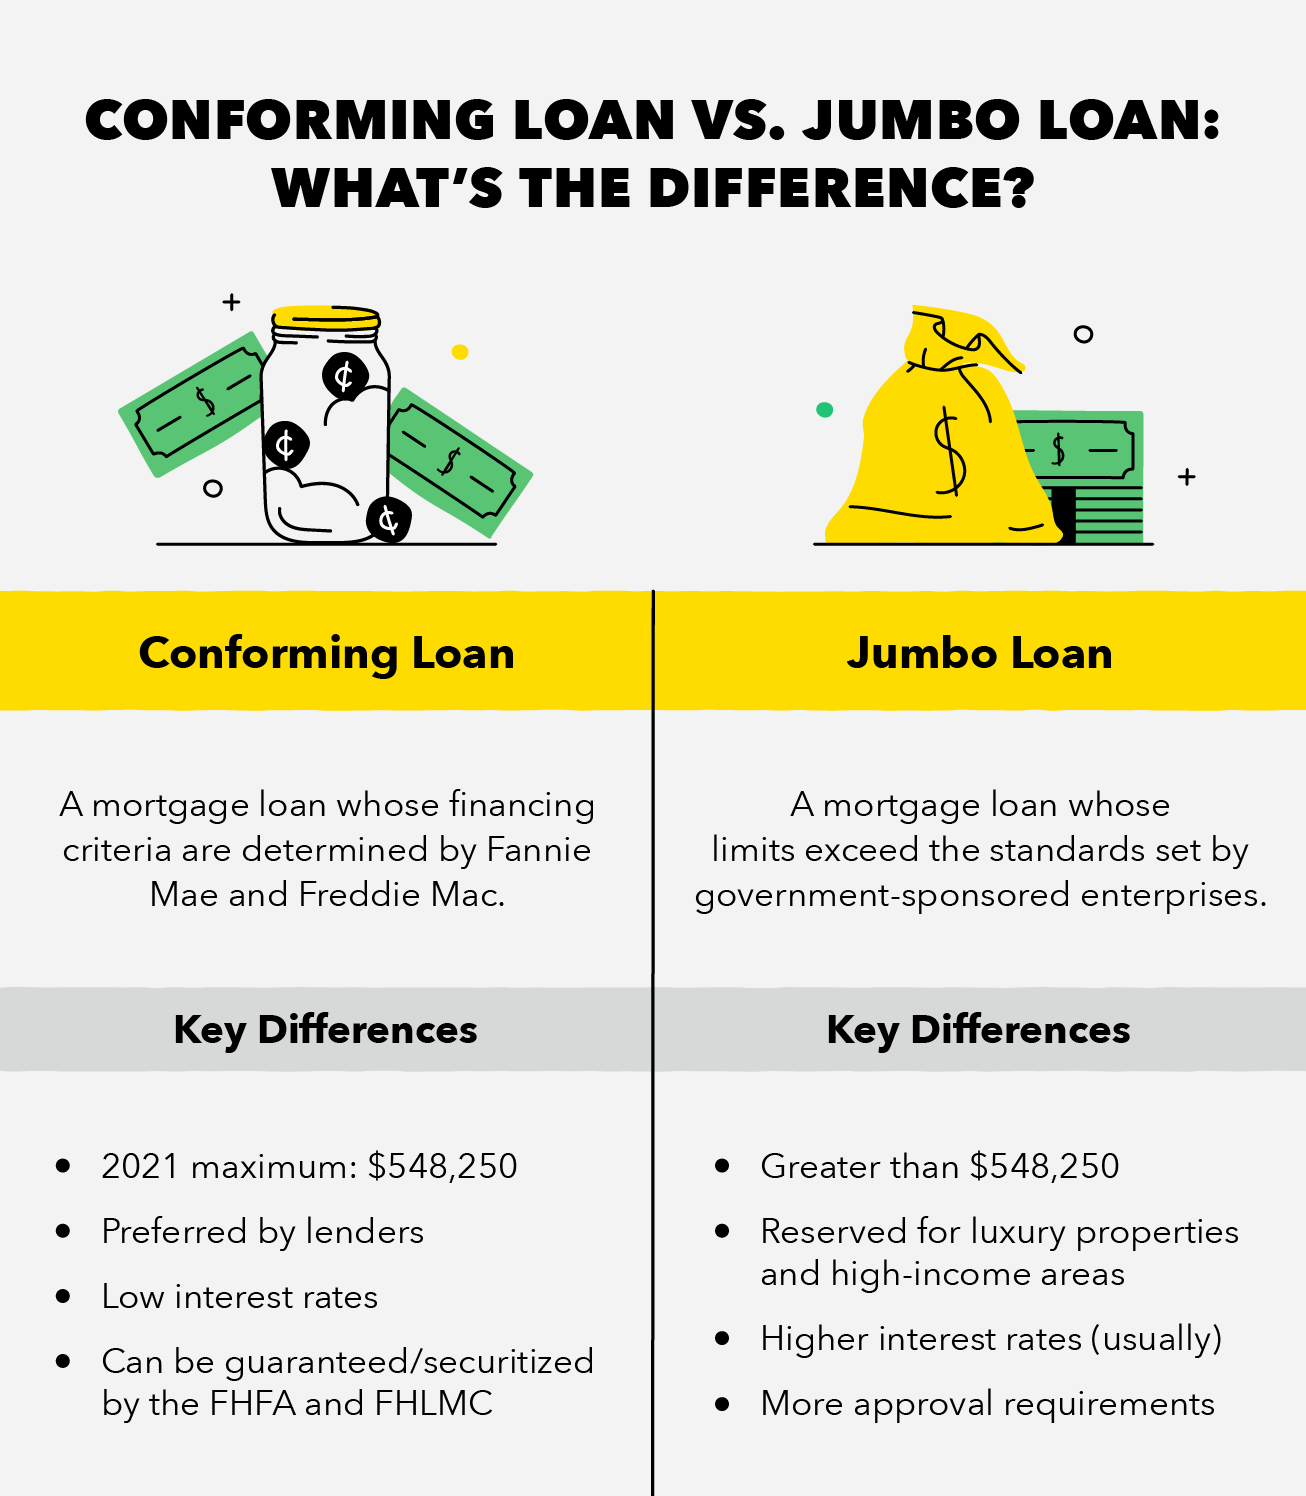 Jumbo Loan vs. Conforming Loan- Pros and Cons